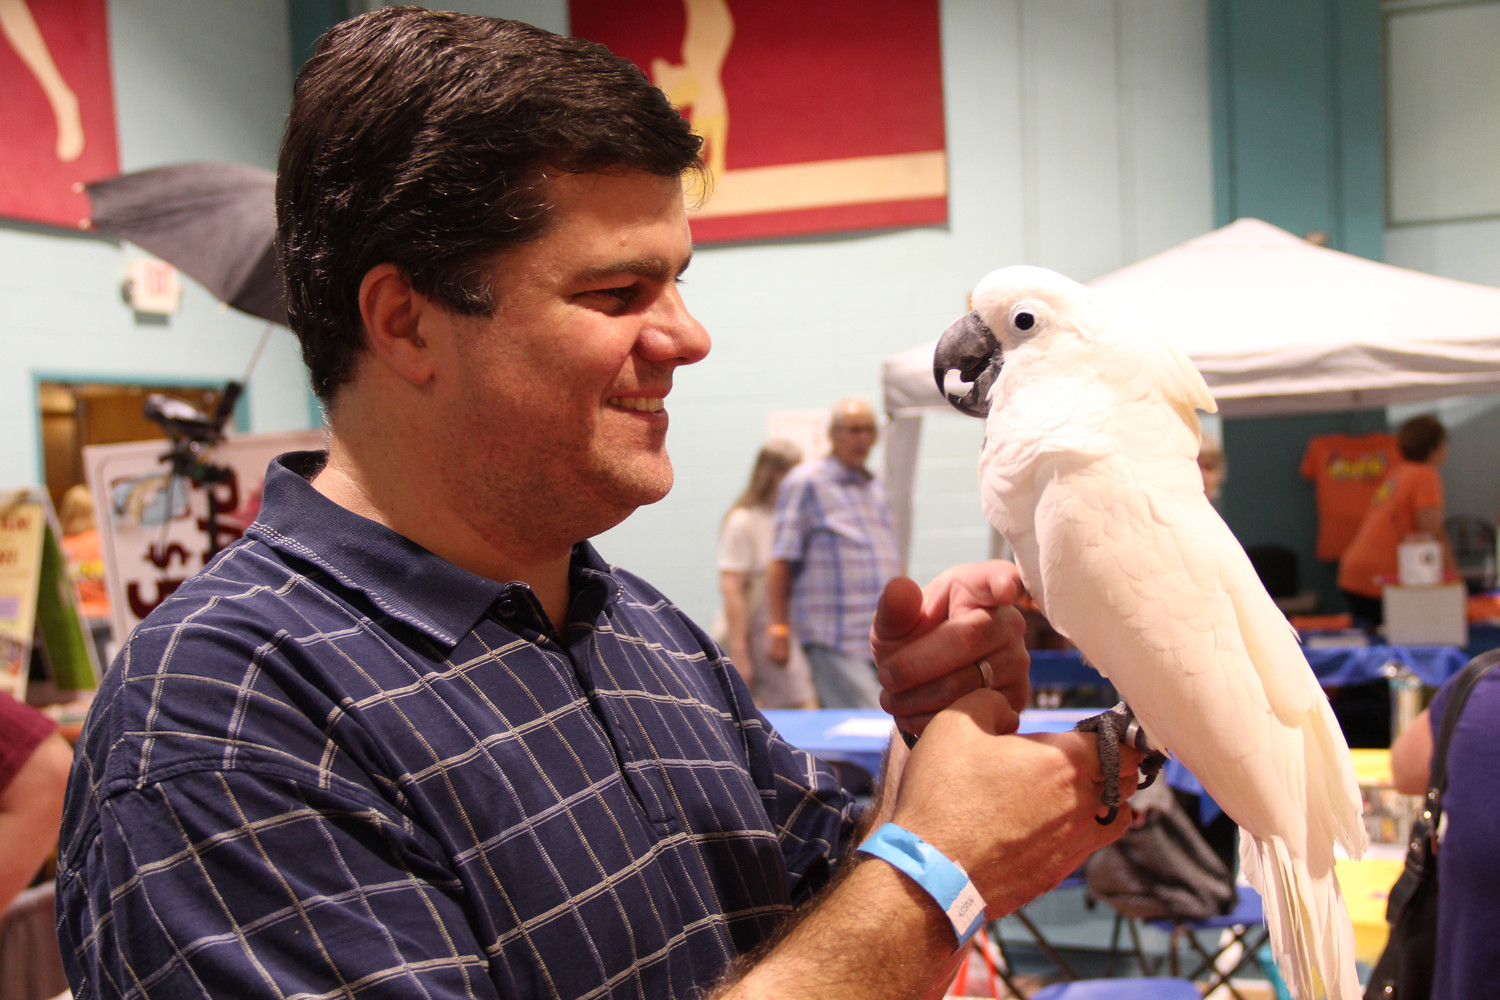 Frank Nisita and Romeo, a cockatoo, held a conversation.